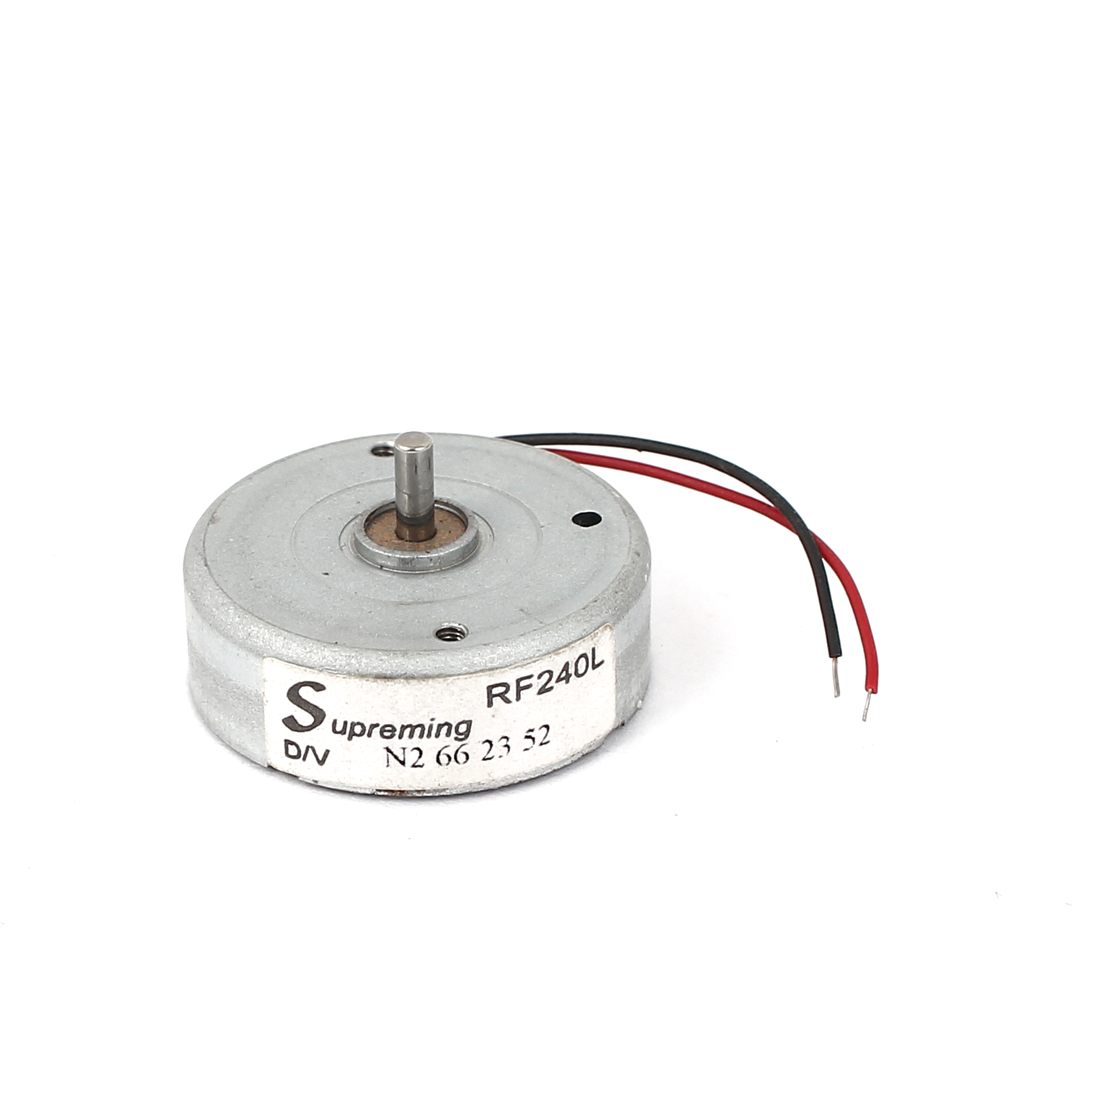 DC 3-5V 7500RPM 9x24mm Electric Mini Motor 400 for CD DVD Player